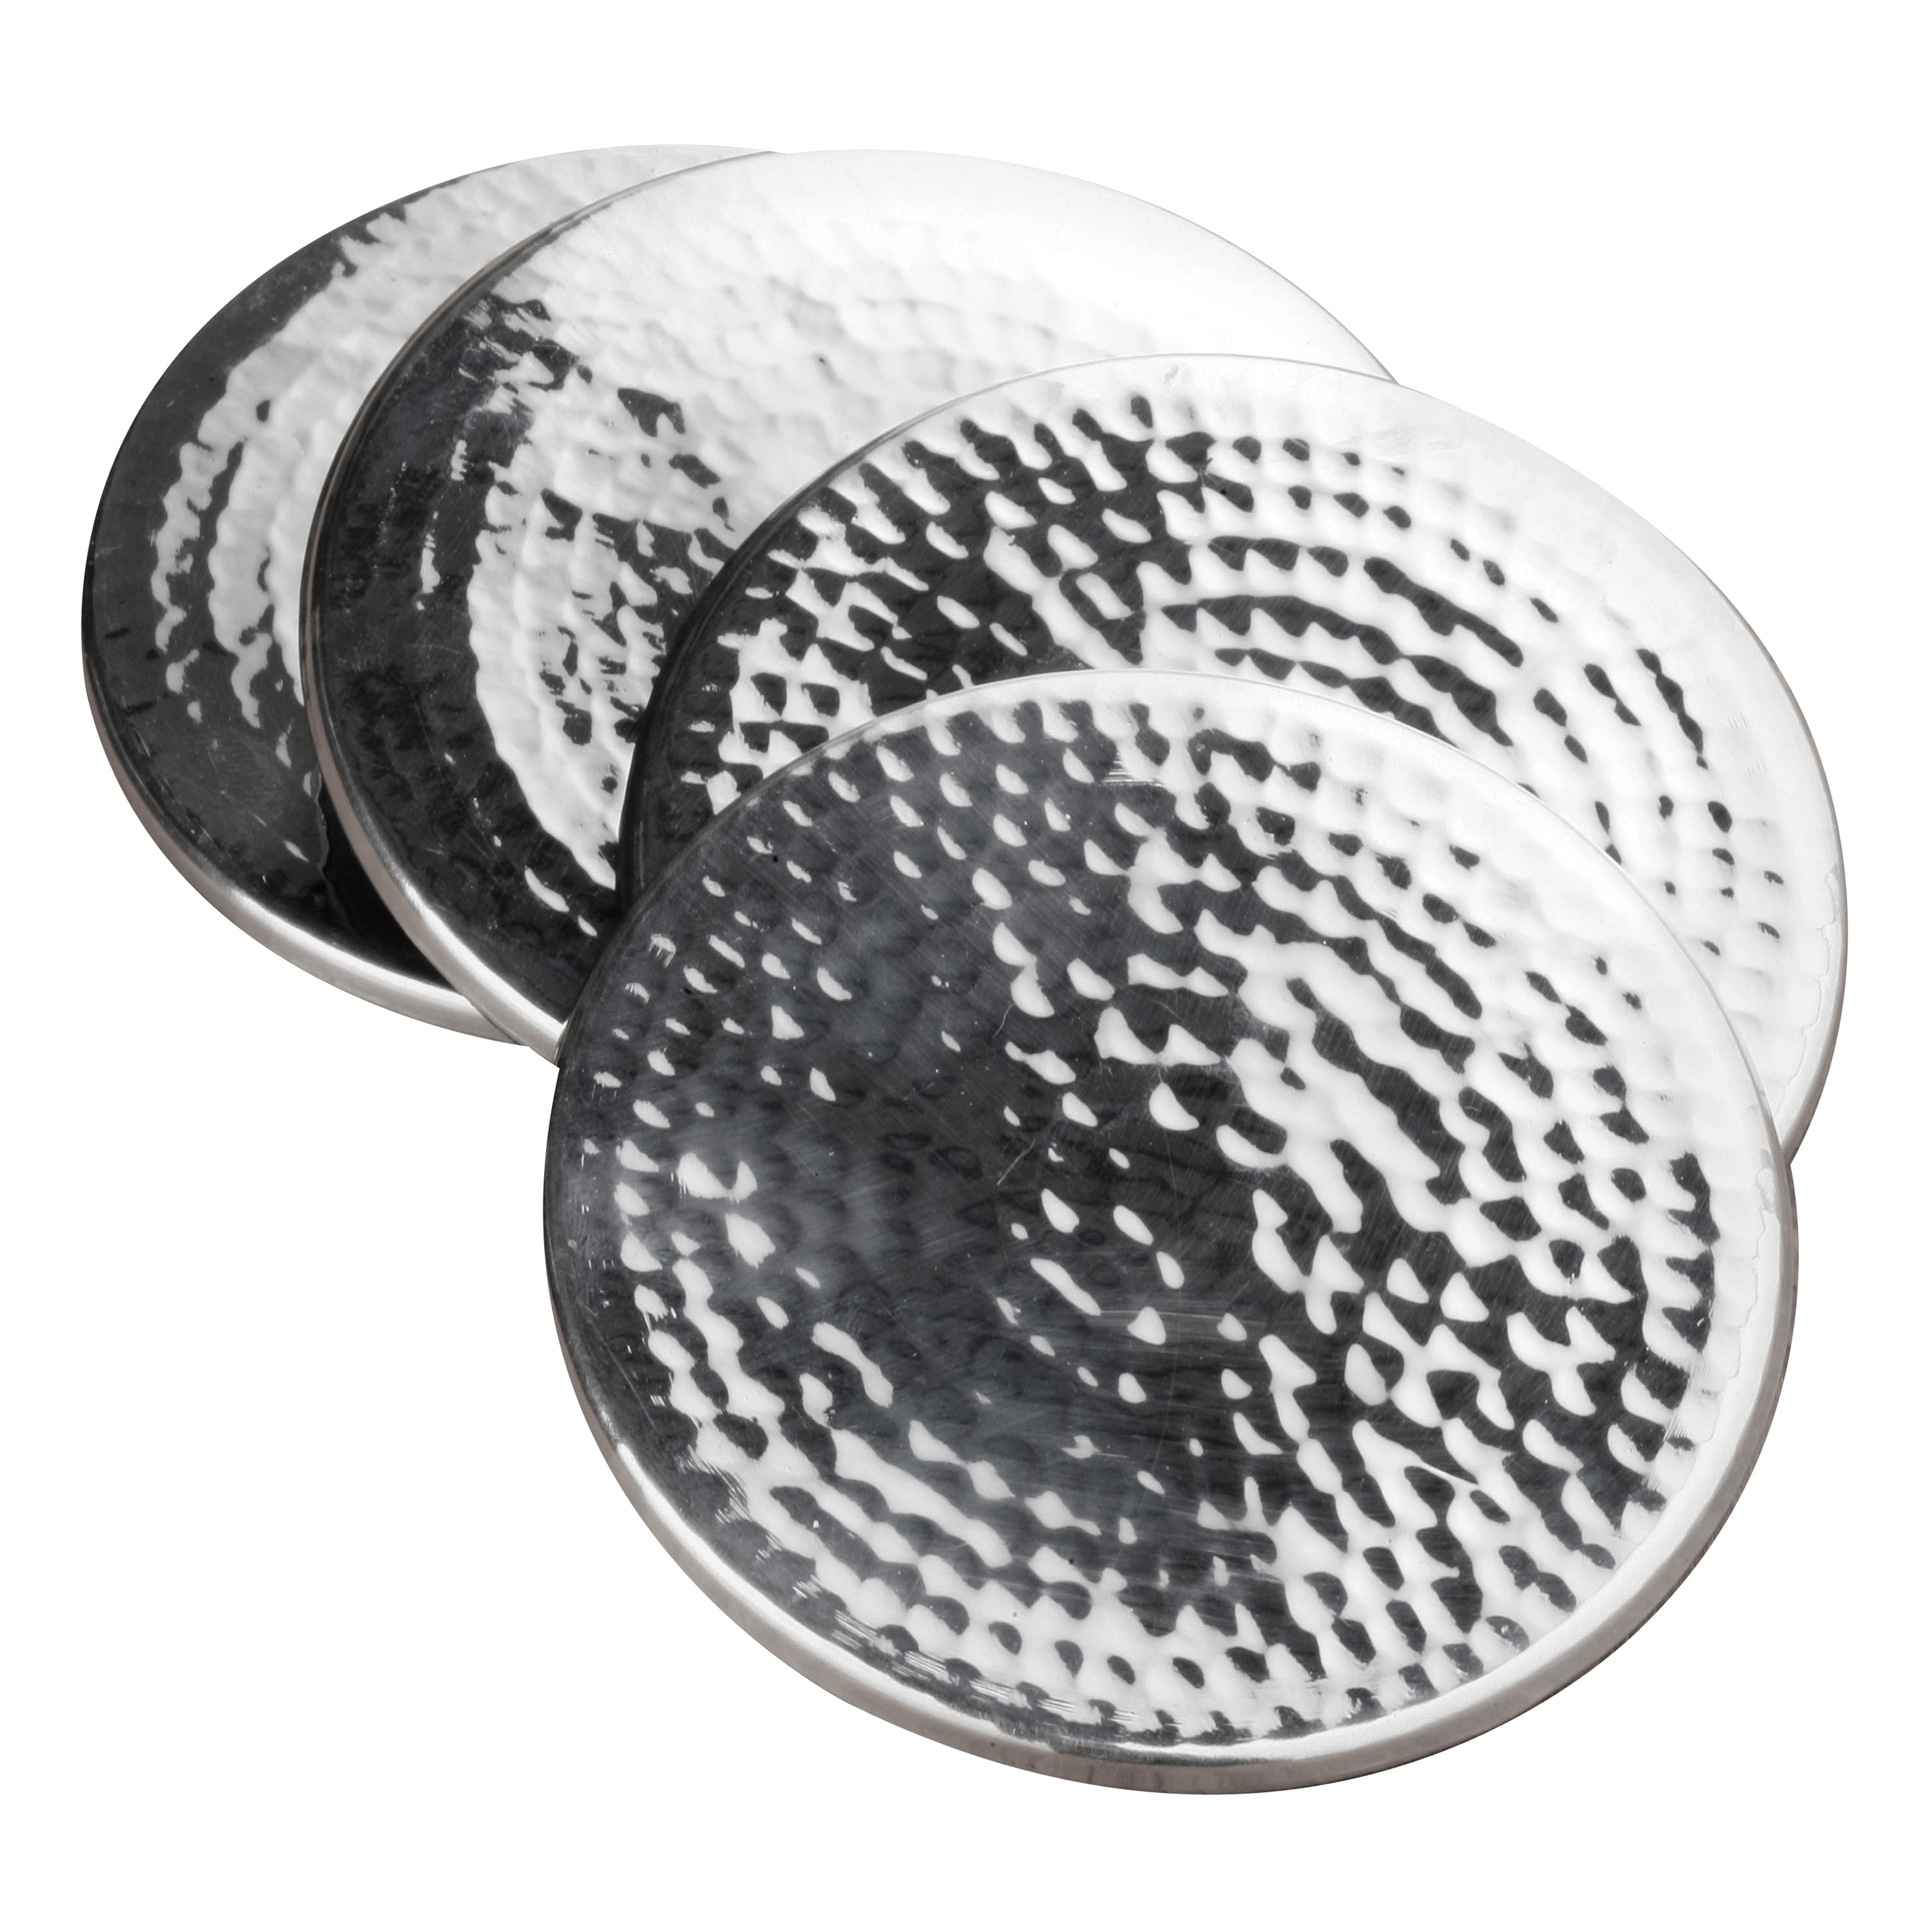 Coasters, Hammered Stainless Steel - Set of 4